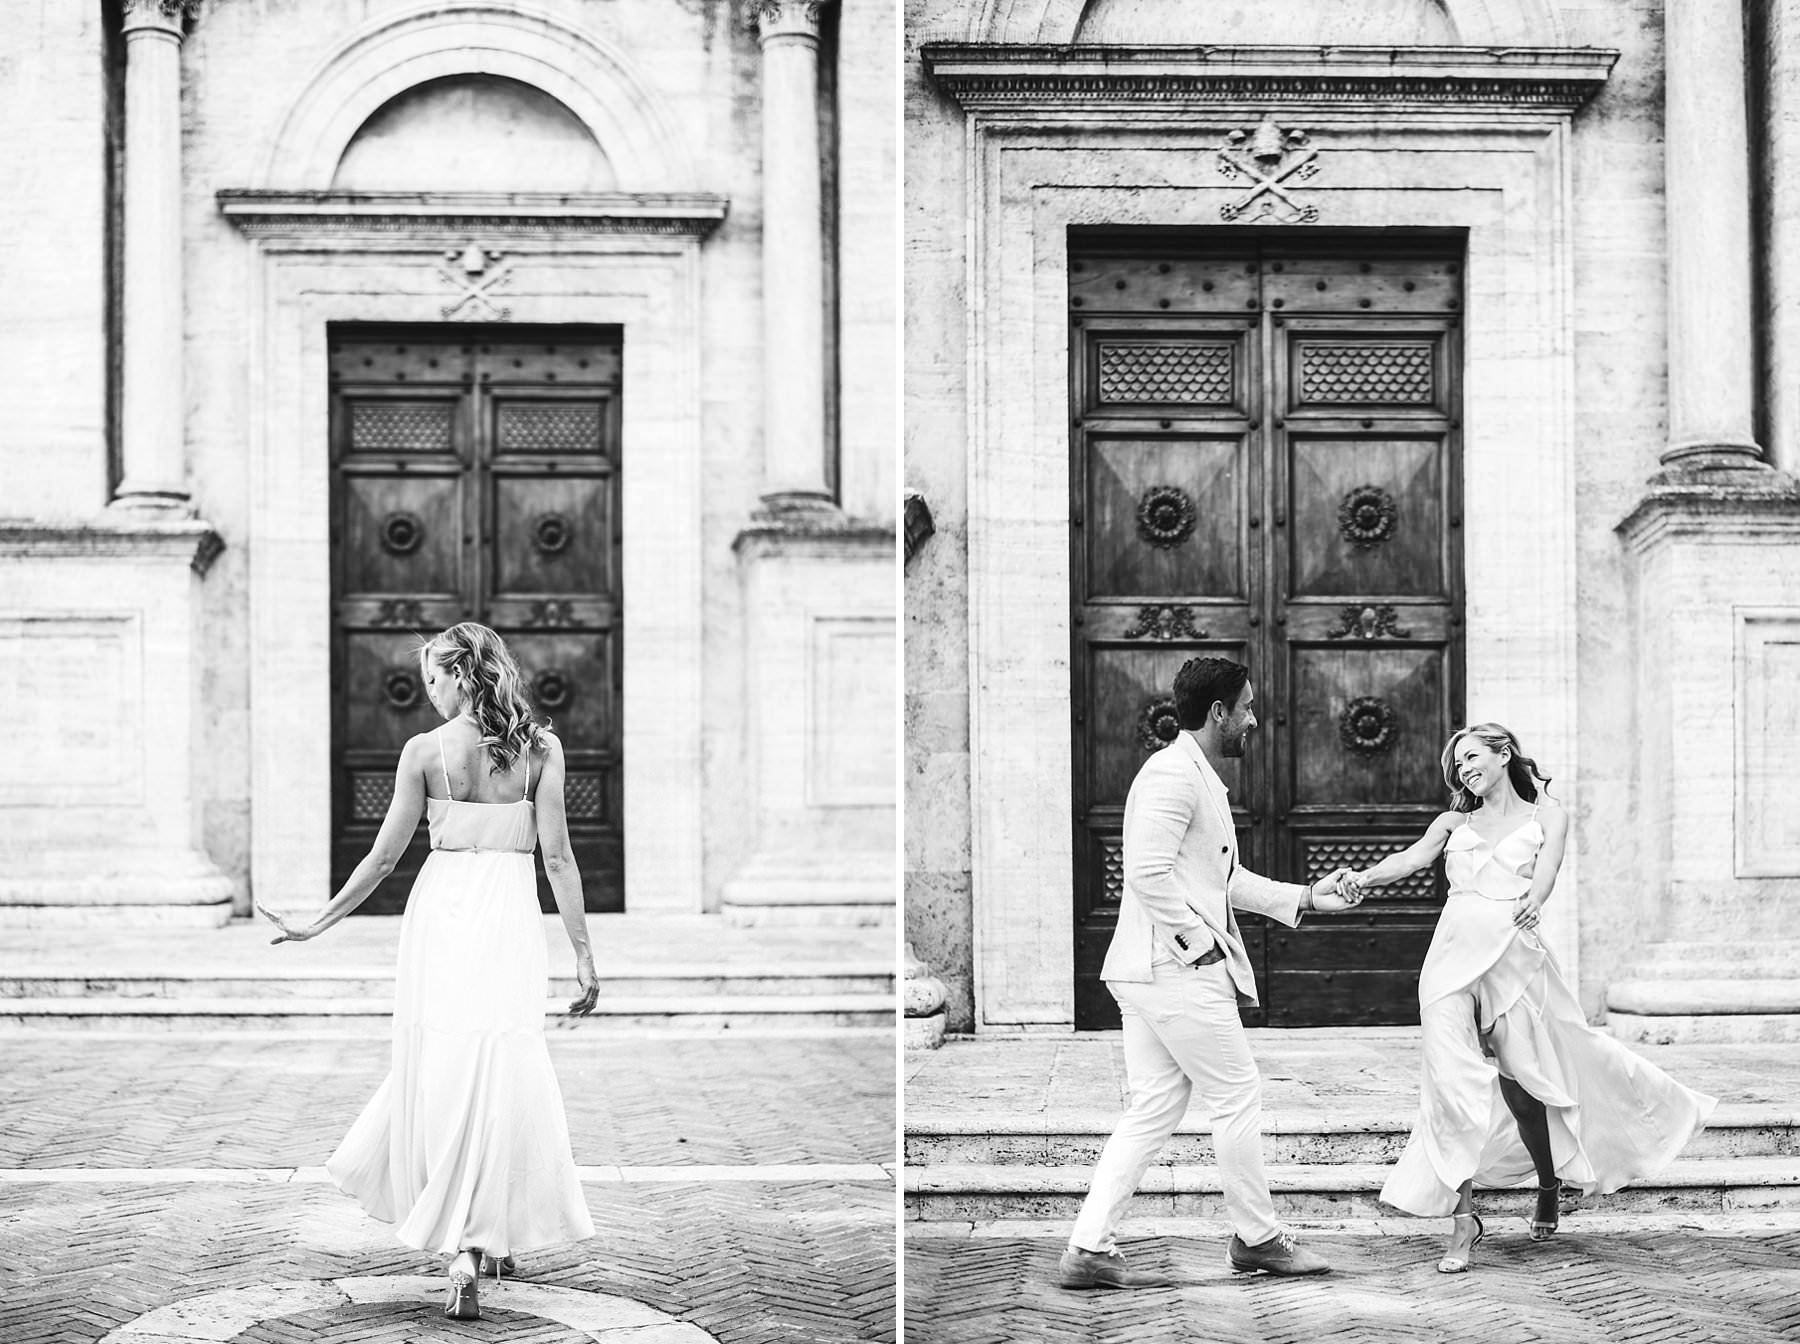 Exciting engagement couple portrait experience in the town of Pienza in Val D'Orcia area